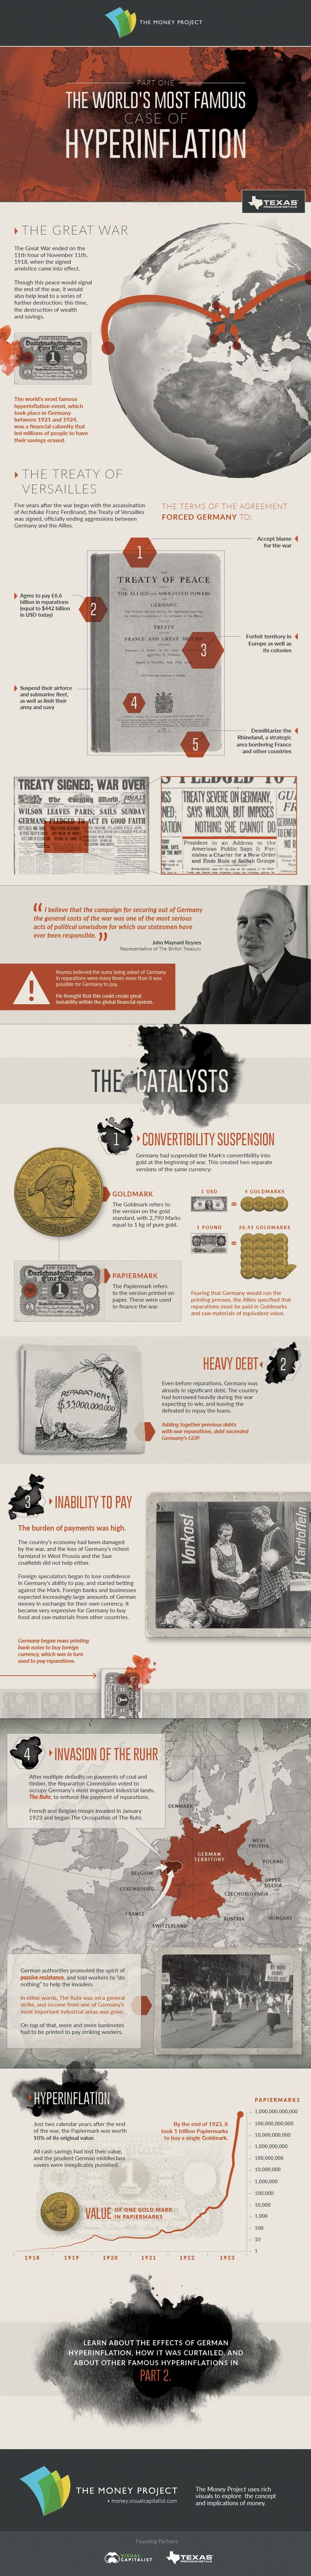 The World's Most Famous Case Of Hyperinflation (Part 1)   Zero Hedge